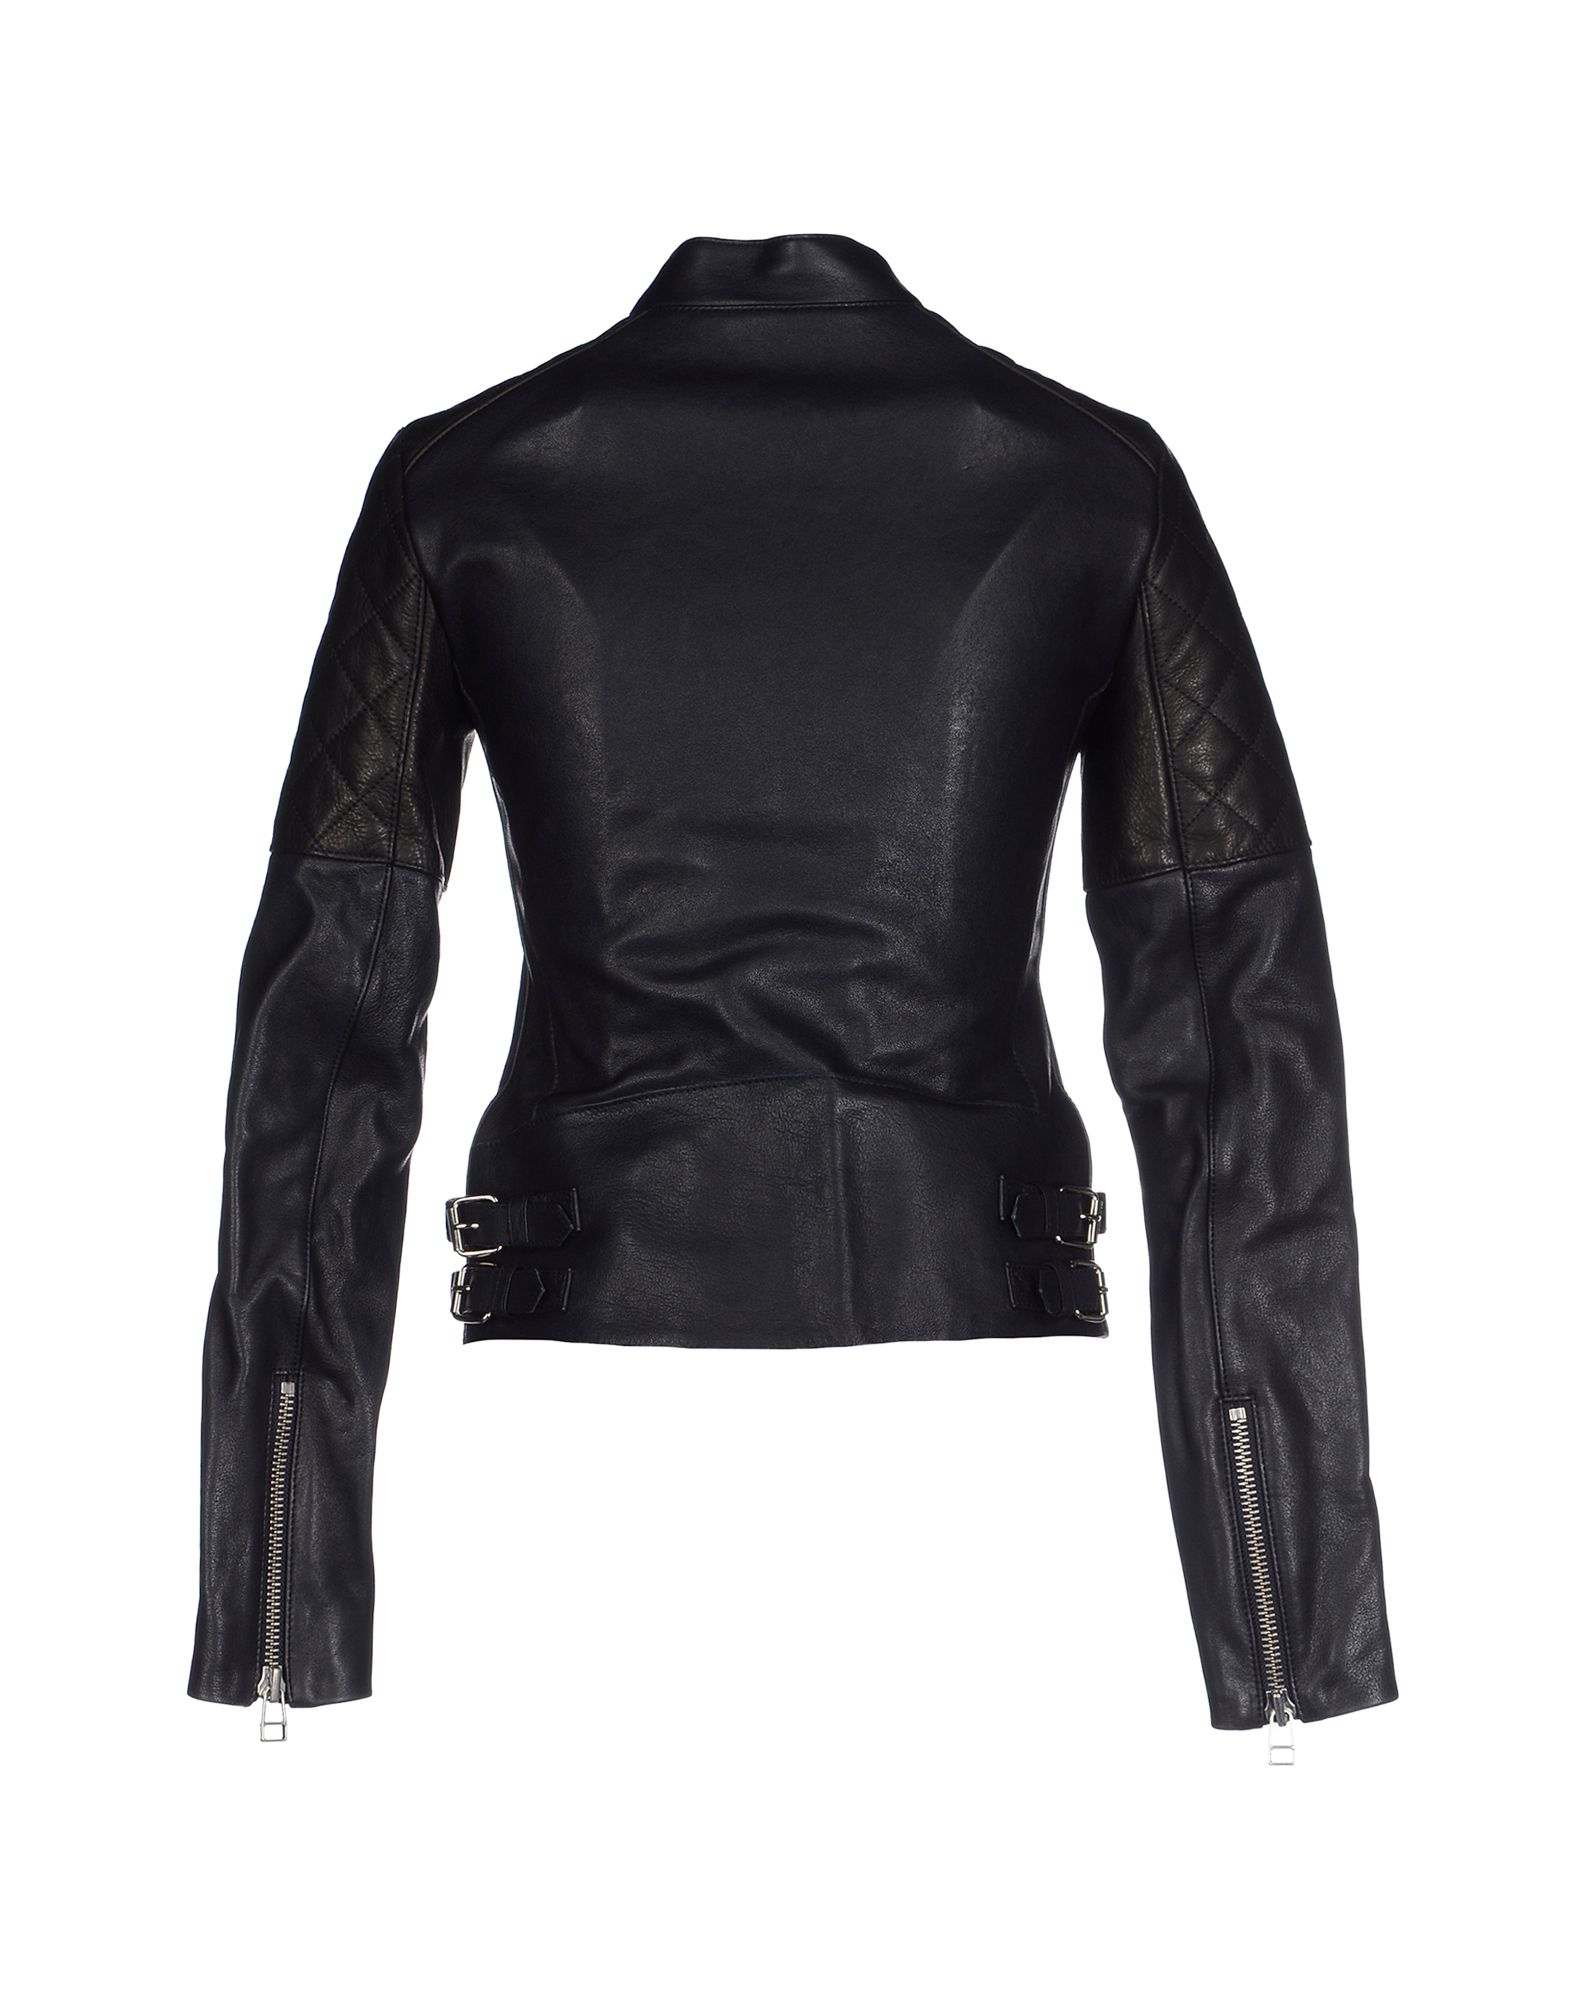 Blue moon leather jackets